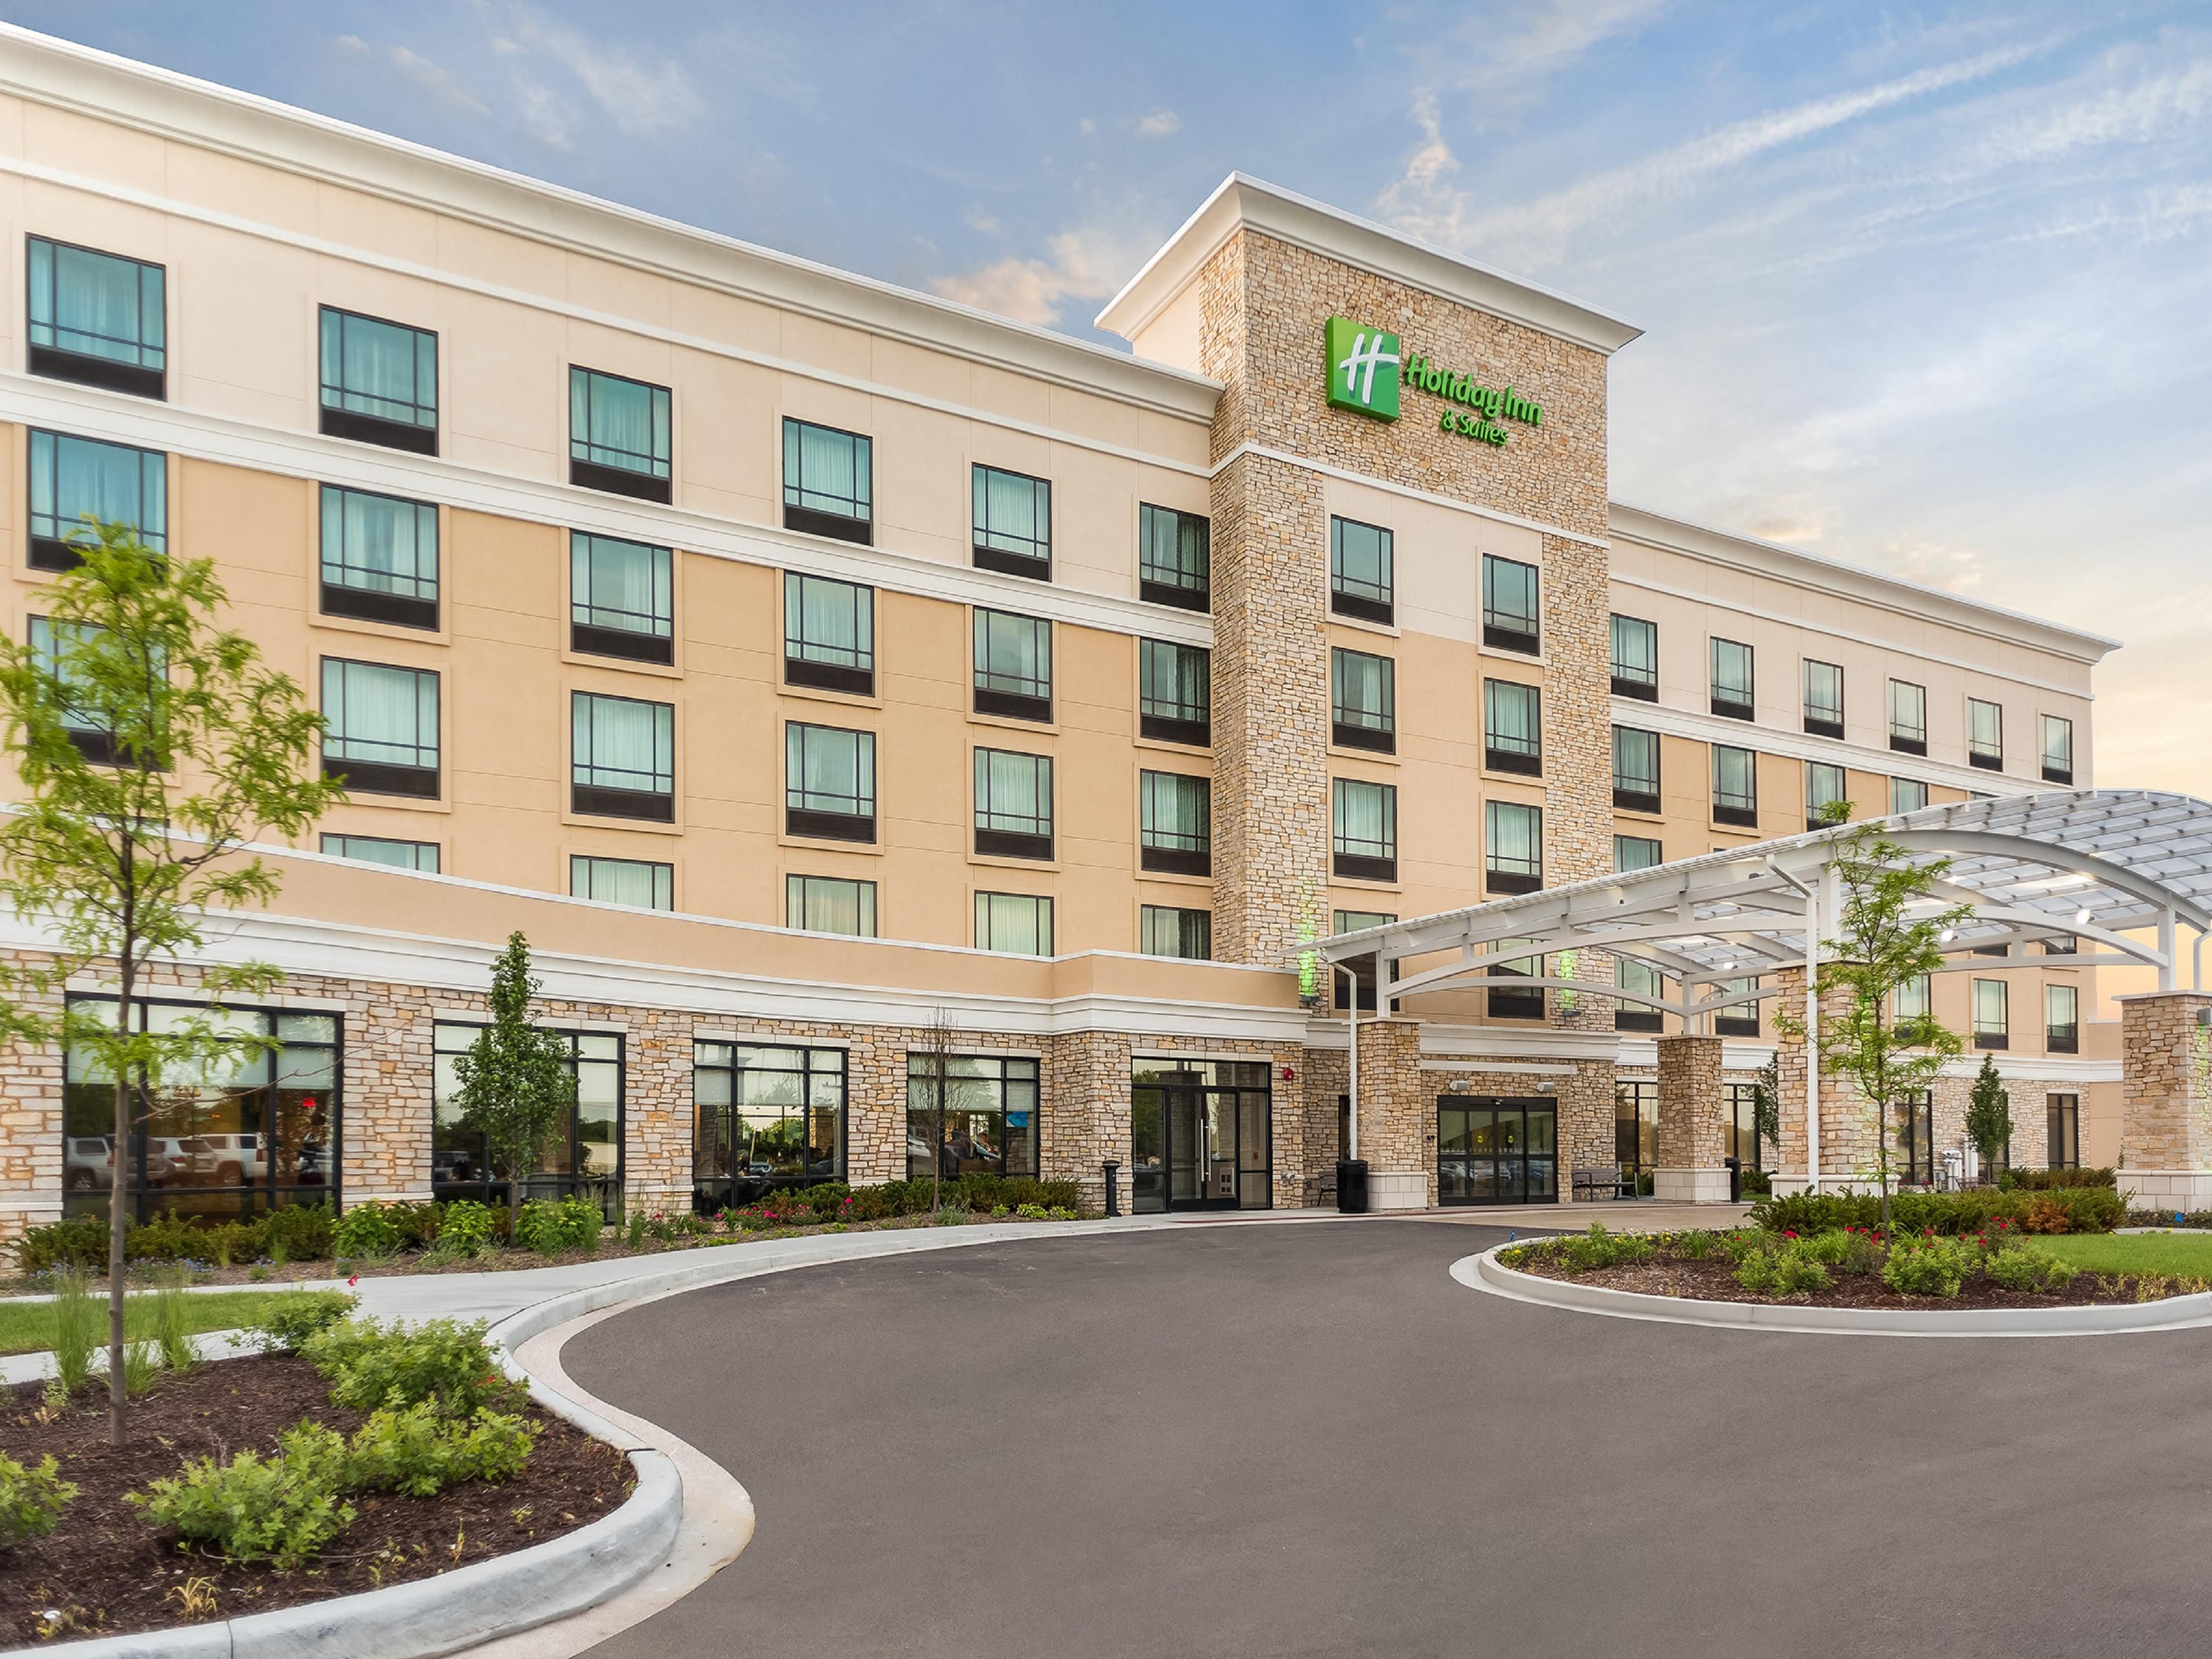 holiday-inn-hotel-and-suites-joliet-5763378788-4x3